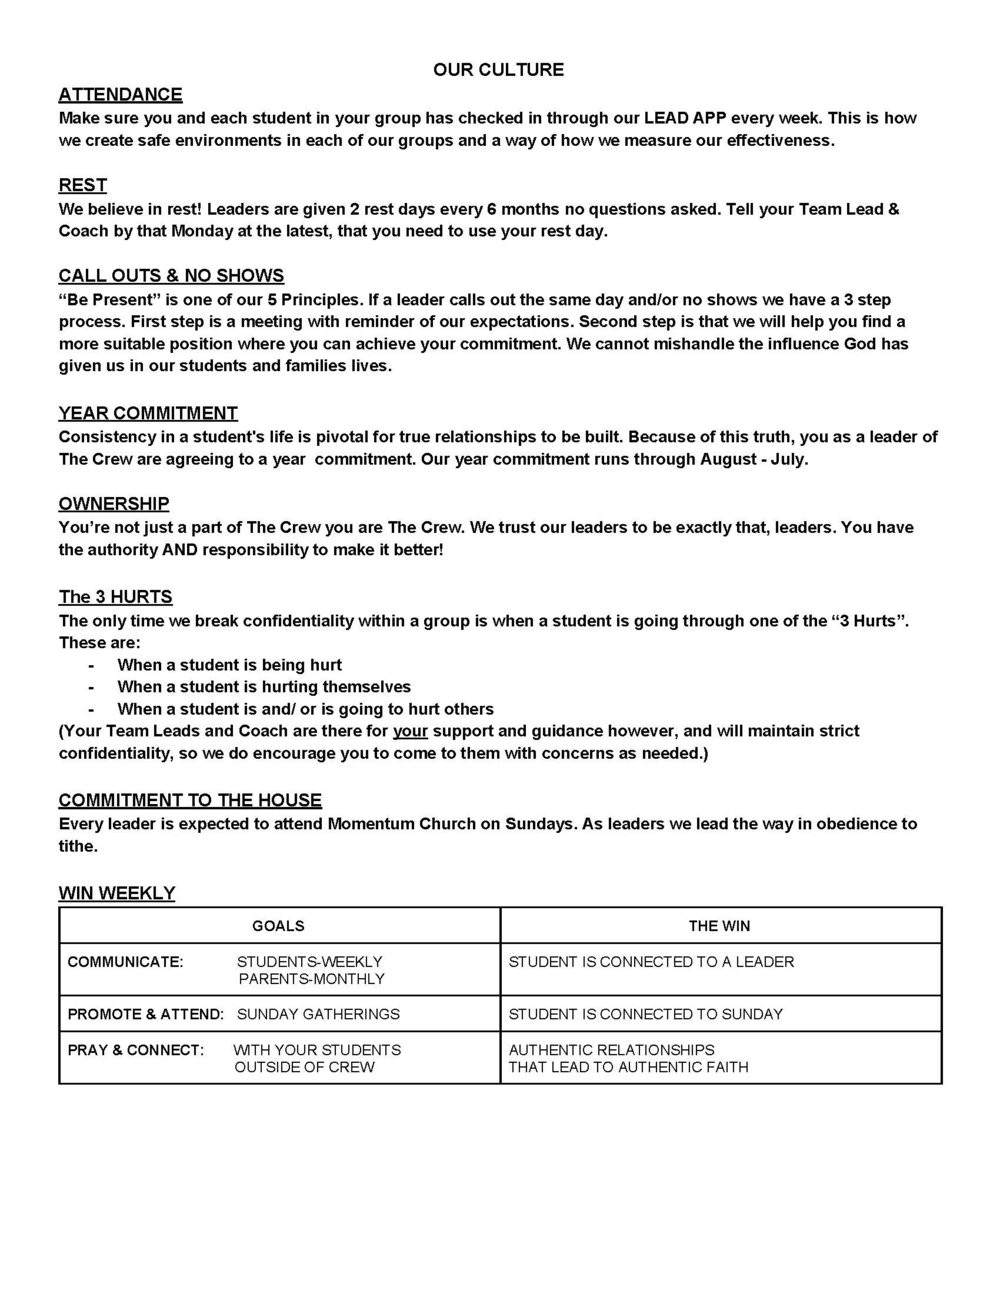 Leader Job Description & Expectation Page 2